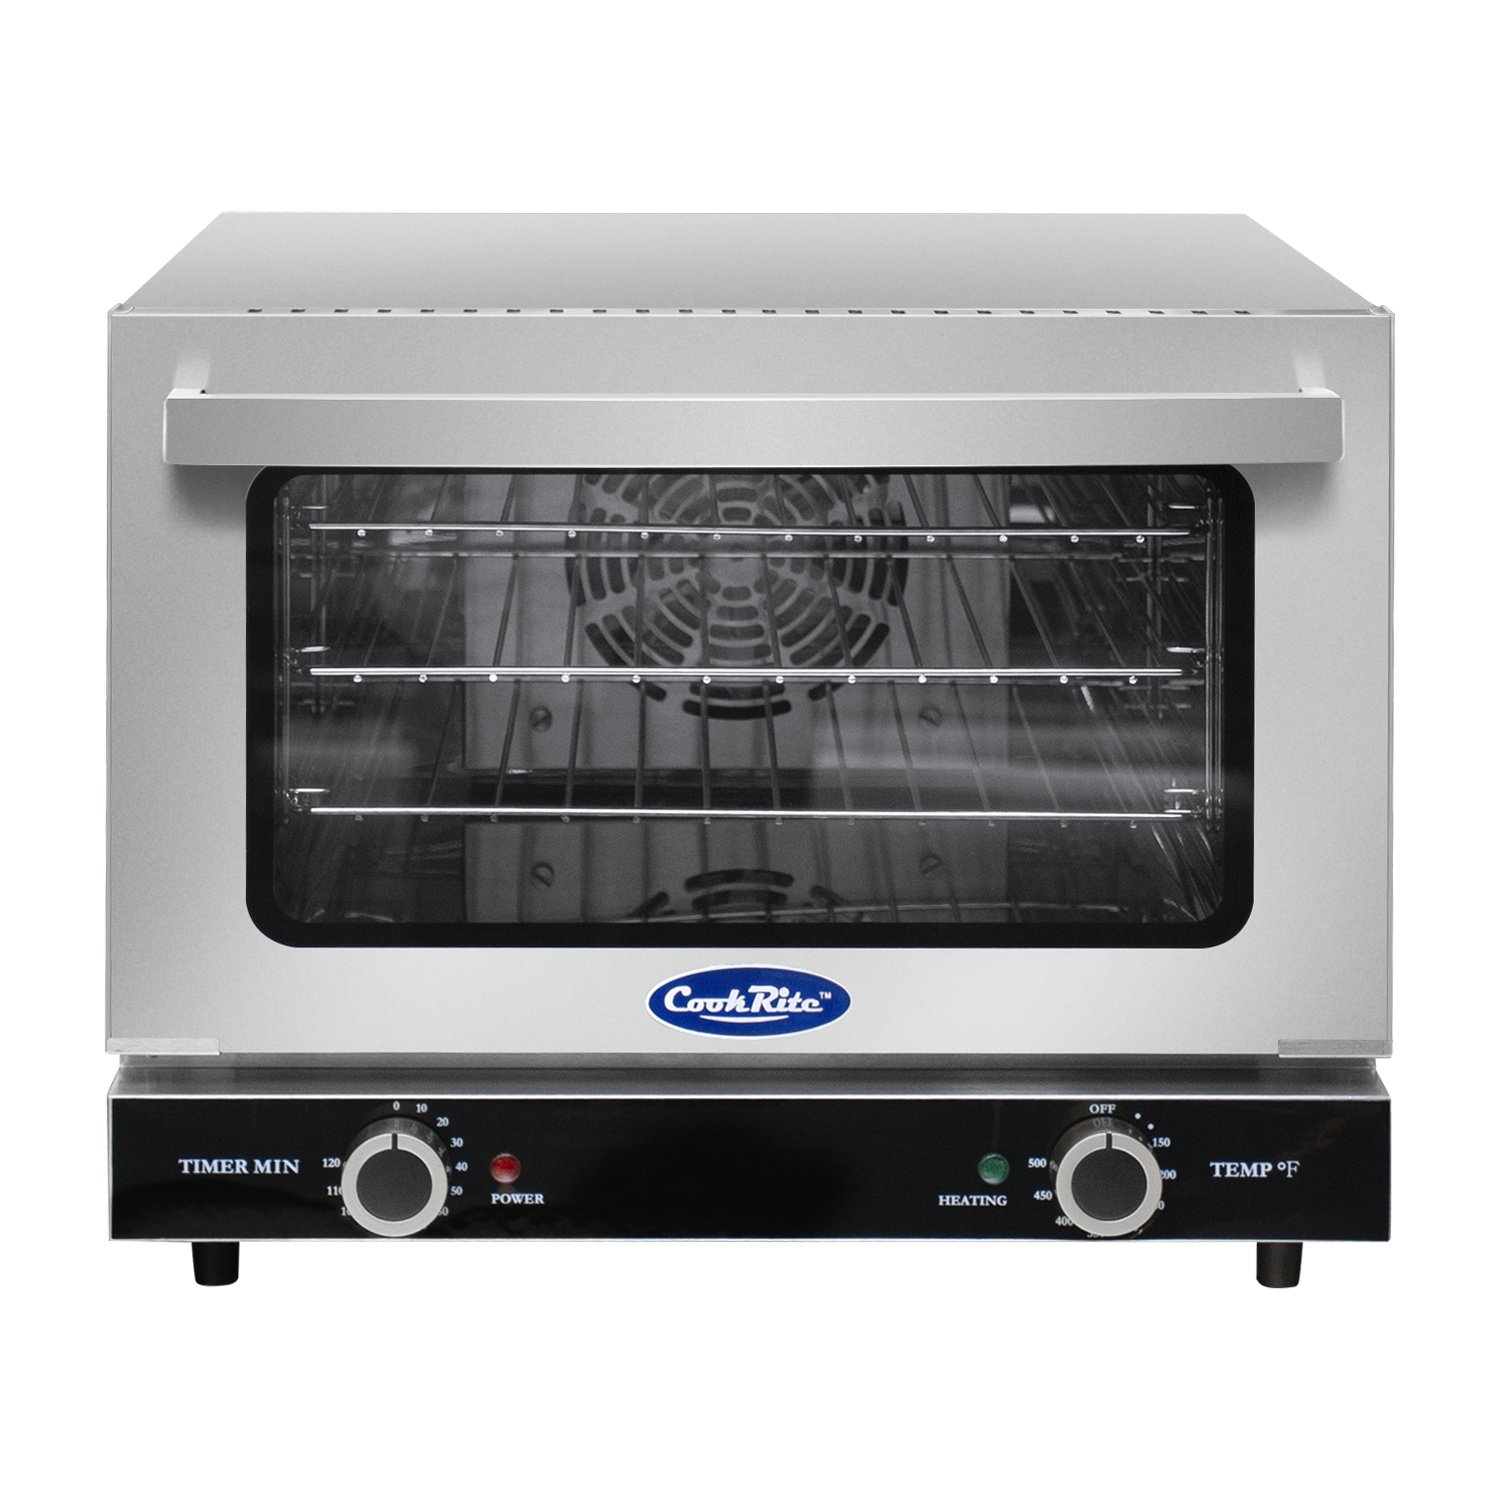 Commercial Electric Convection Oven,COOKRITE CRCC-25 Commercial Small Electric Countertop Convection Oven Stainless Steel Countertop Ovens Compact Toaster 1/4 Shelves